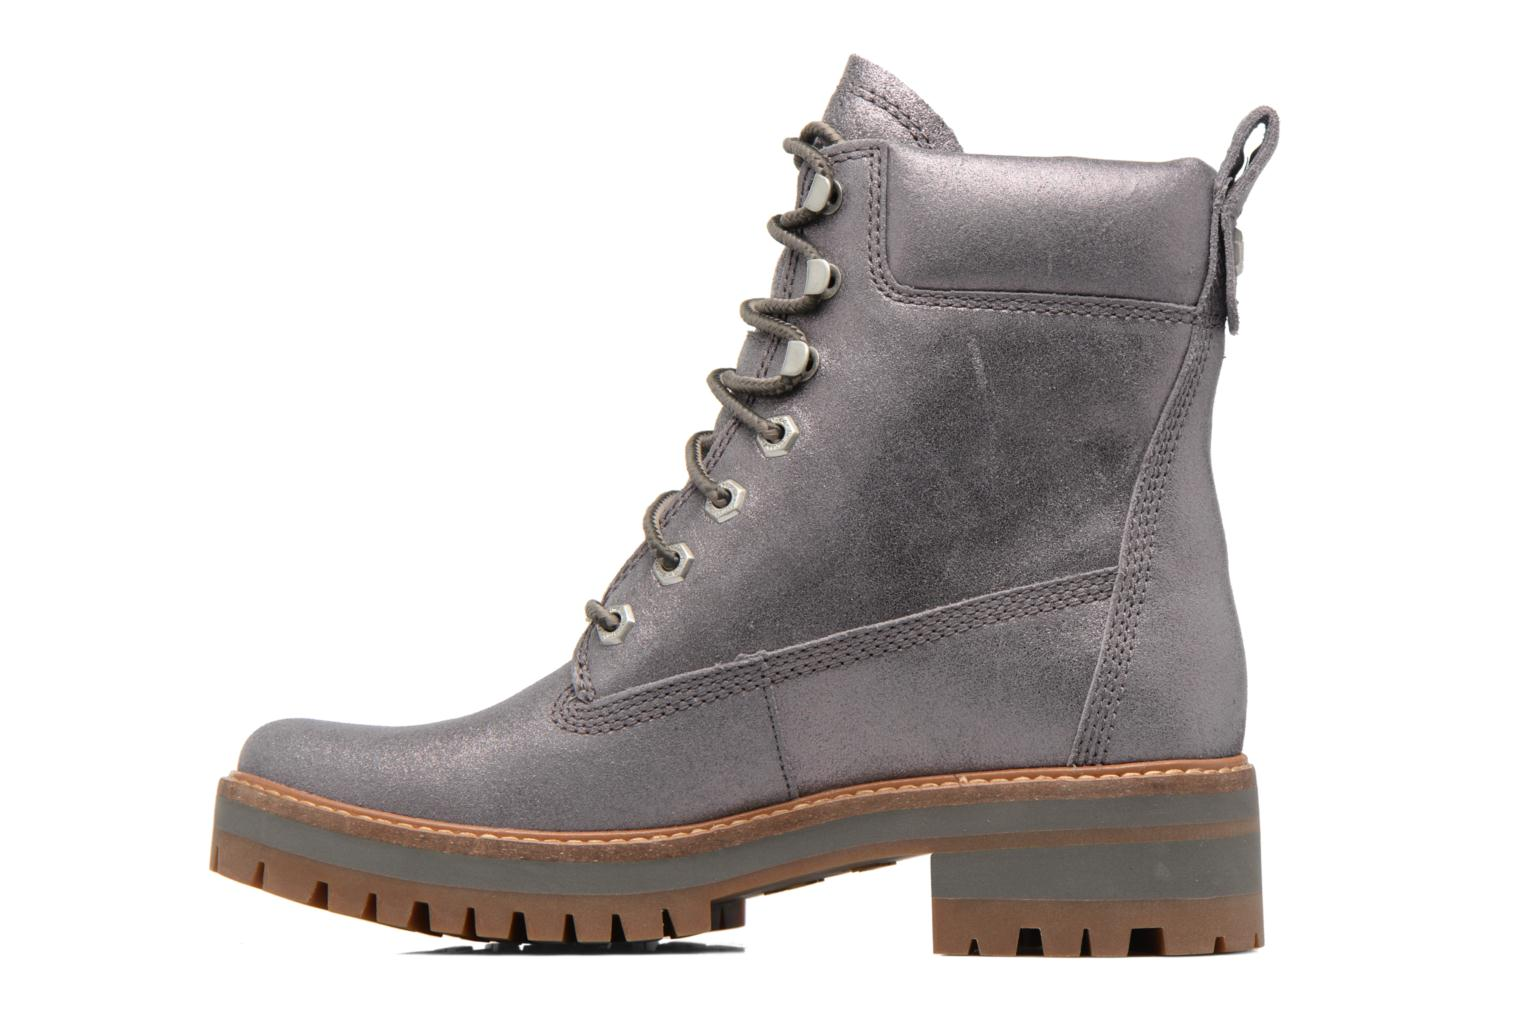 Courmayeur Valley Yellow Boot Dark Grey Shiny Suede